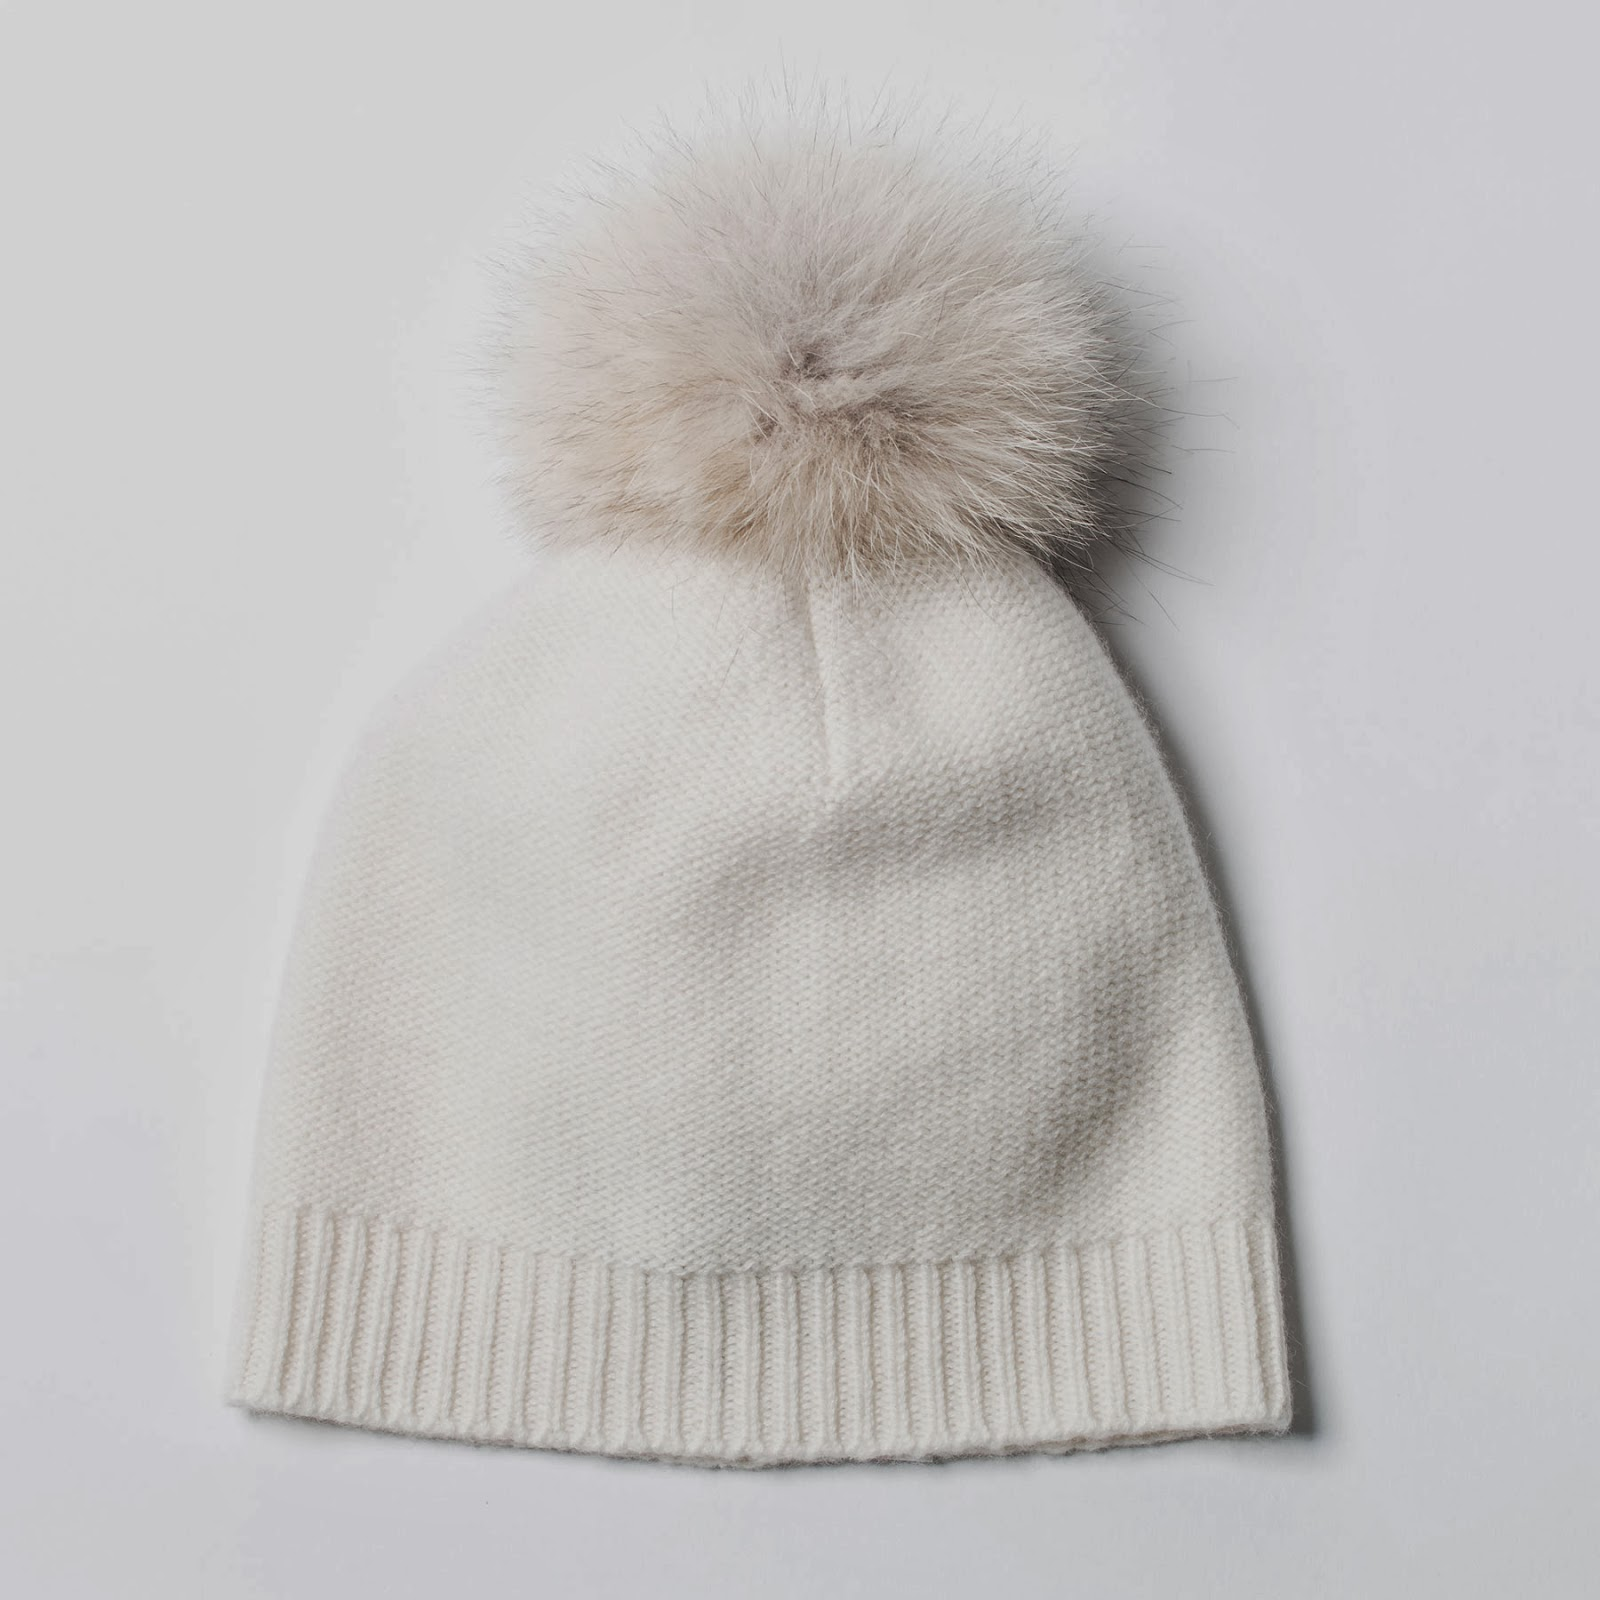 94741f947fe3 Cashmere and Fur Pom Pom Hat!! | c is for cashmere